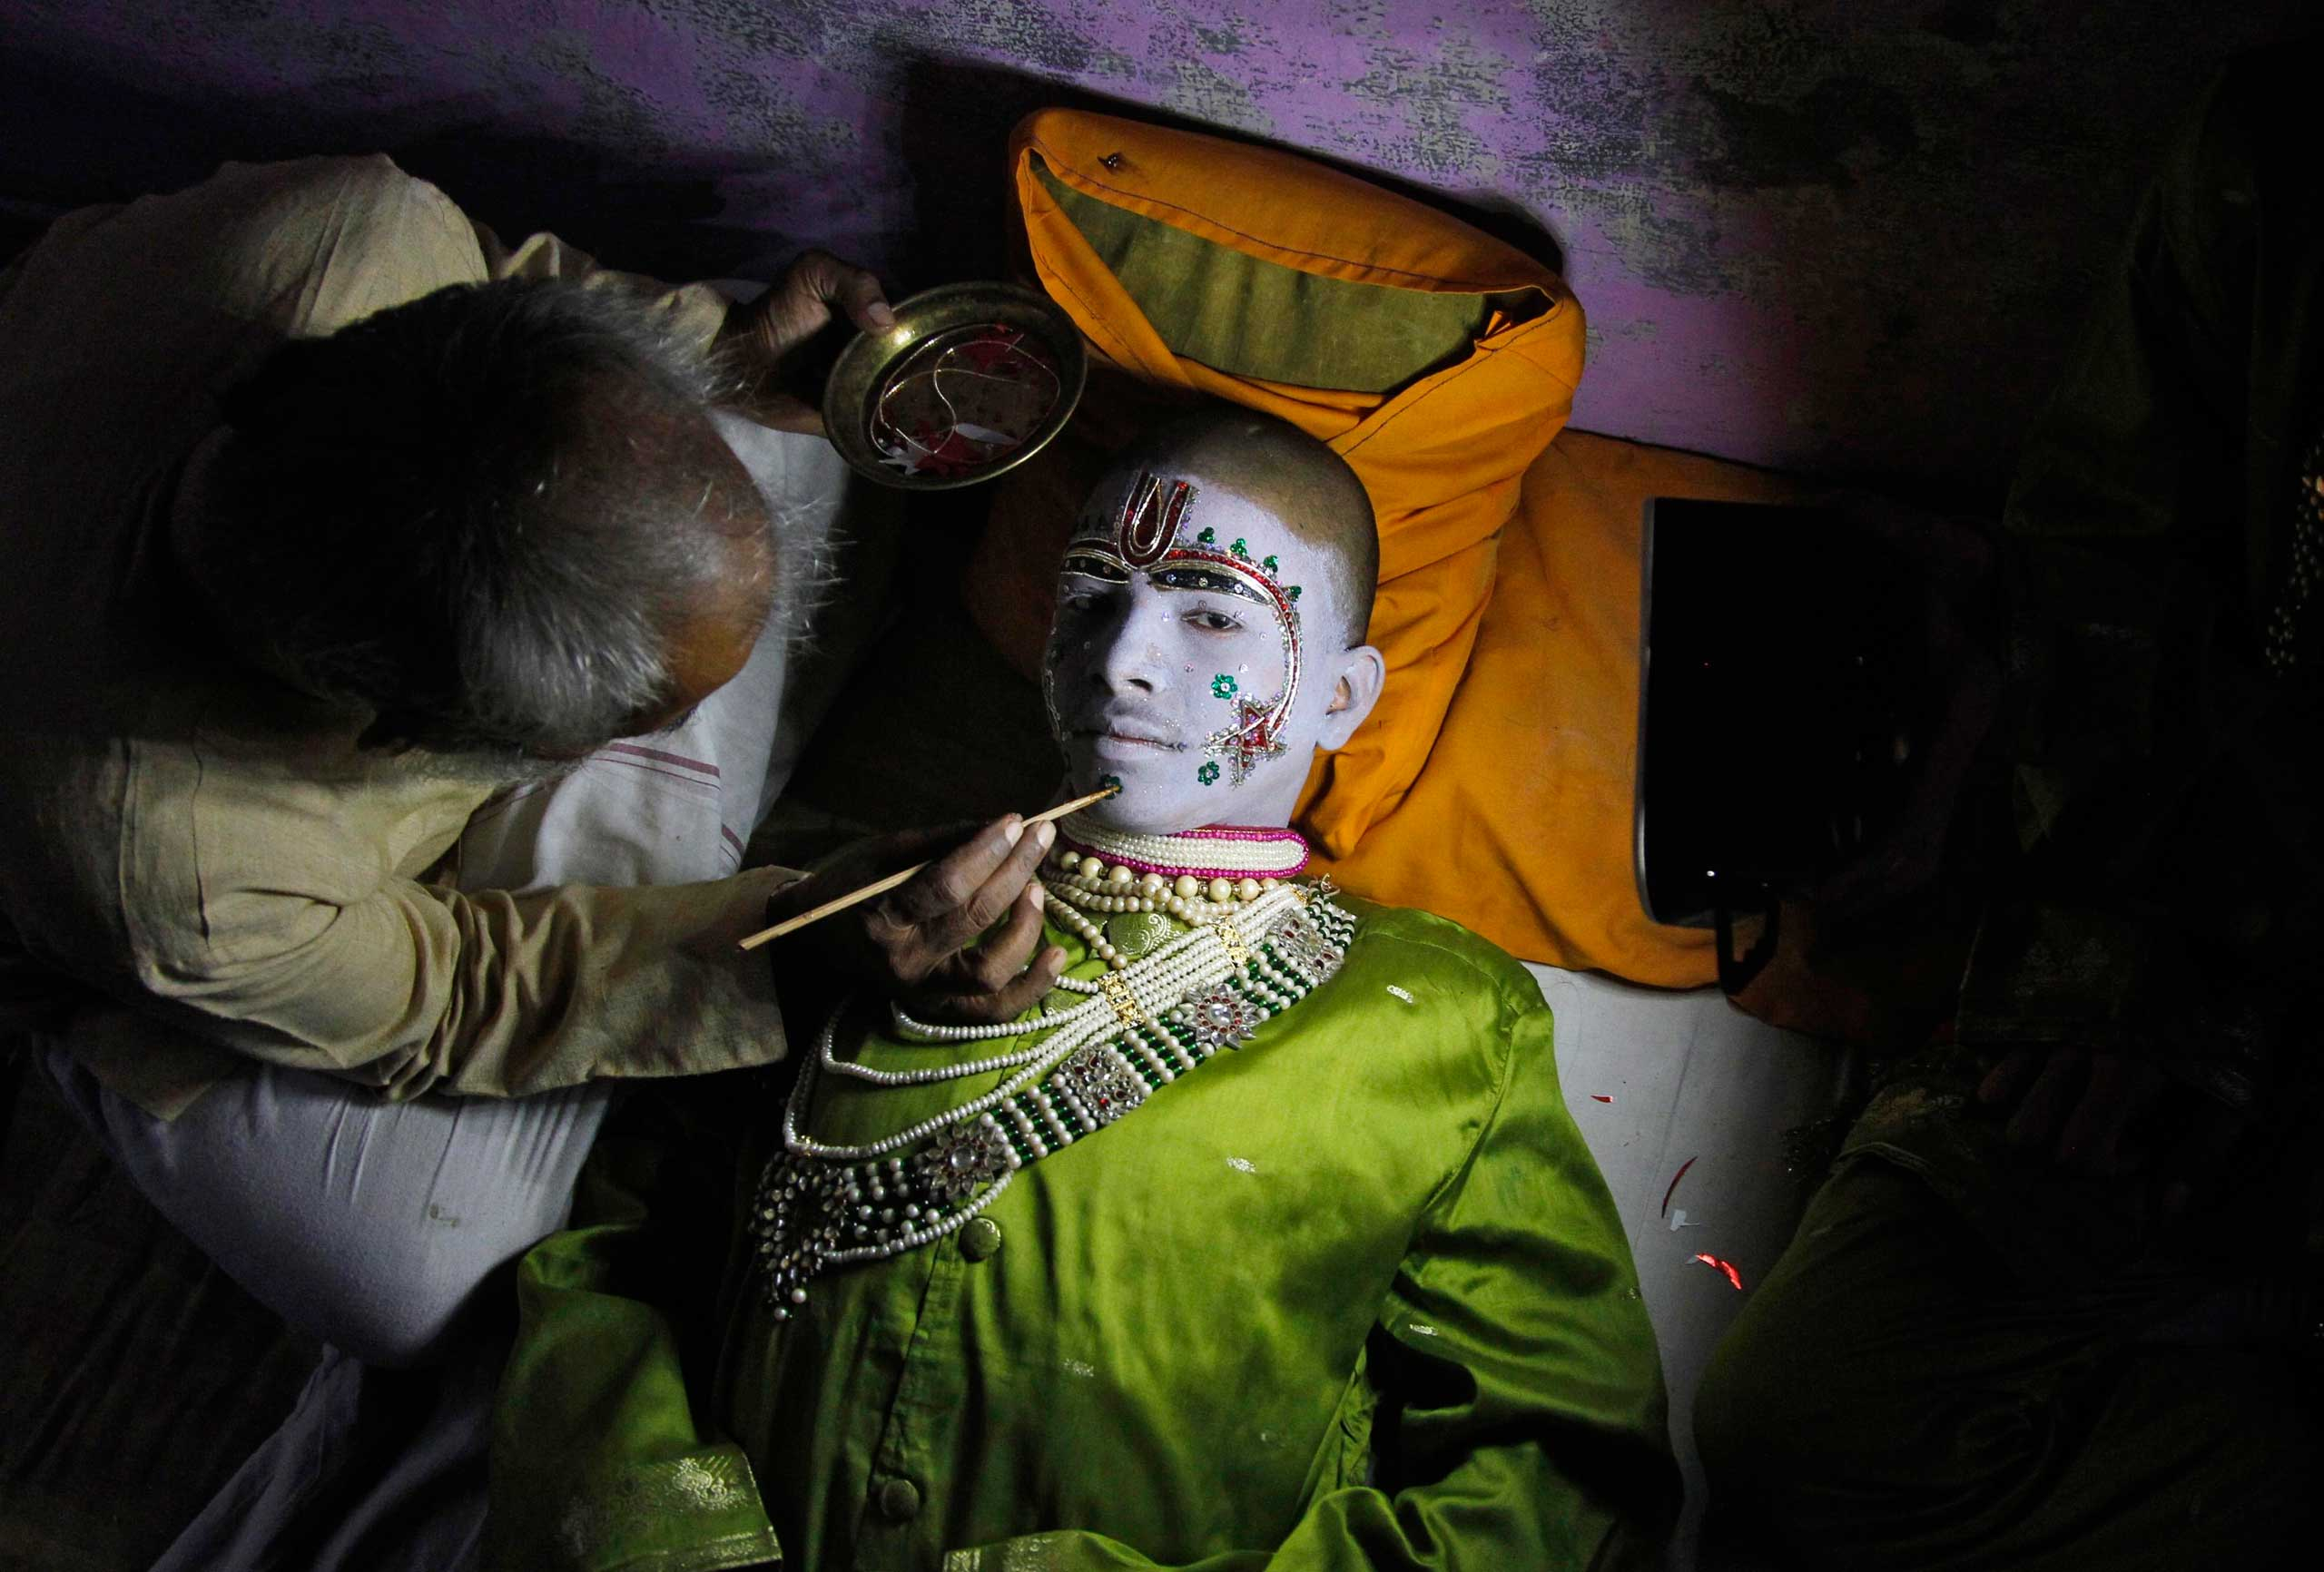 Sept. 30, 2014. Amit Kumar, 14, a performer, gets makeup applied before performing the role of the Hindu lord Rama in a religious play ahead of Dussehra in the northern Indian city of Allahabad. Effigies of the 10-headed demon king  Ravana  are burnt on Dussehra, the Hindu festival that commemorates the triumph of Lord Rama over the Ravana, marking the victory of good over evil.